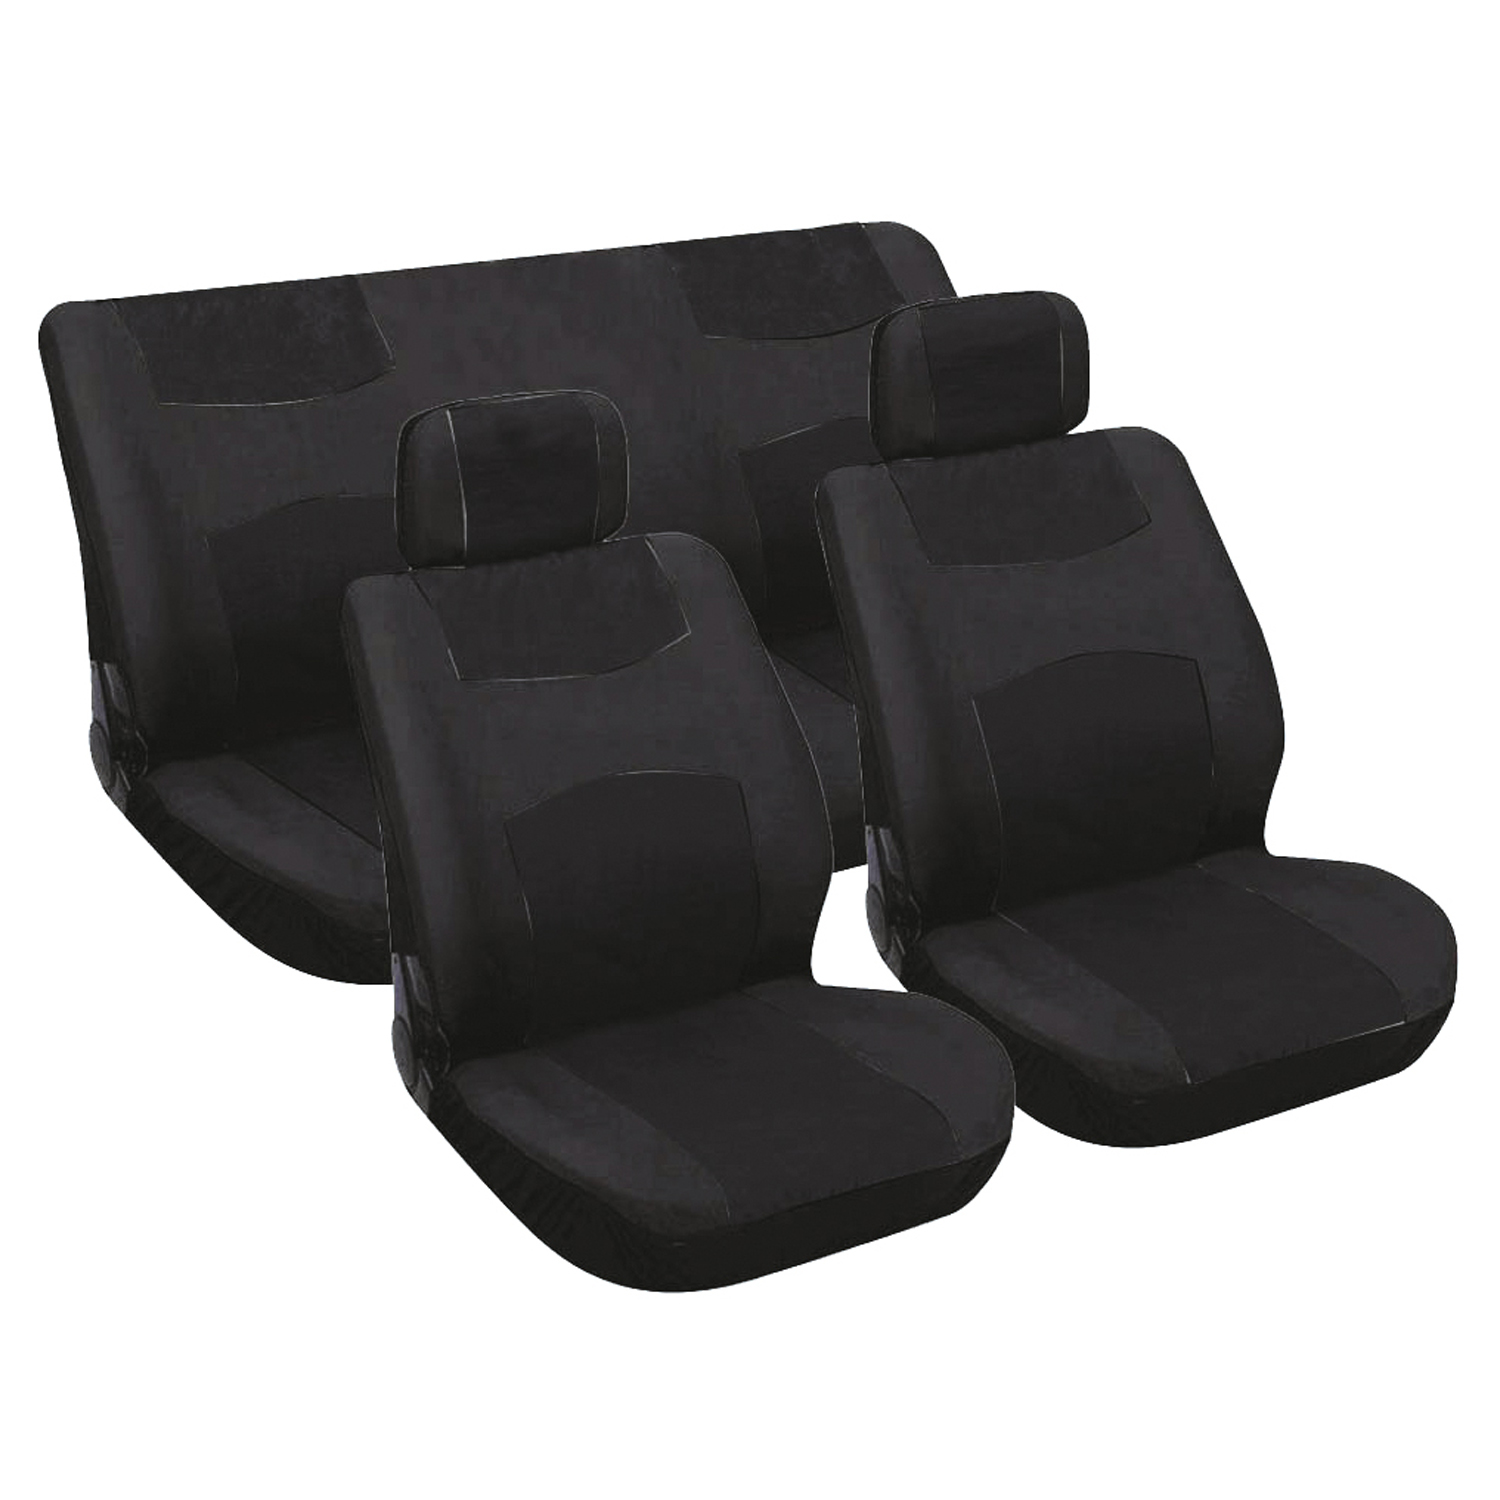 Image of Carpoint 6 Piece Seat Cover